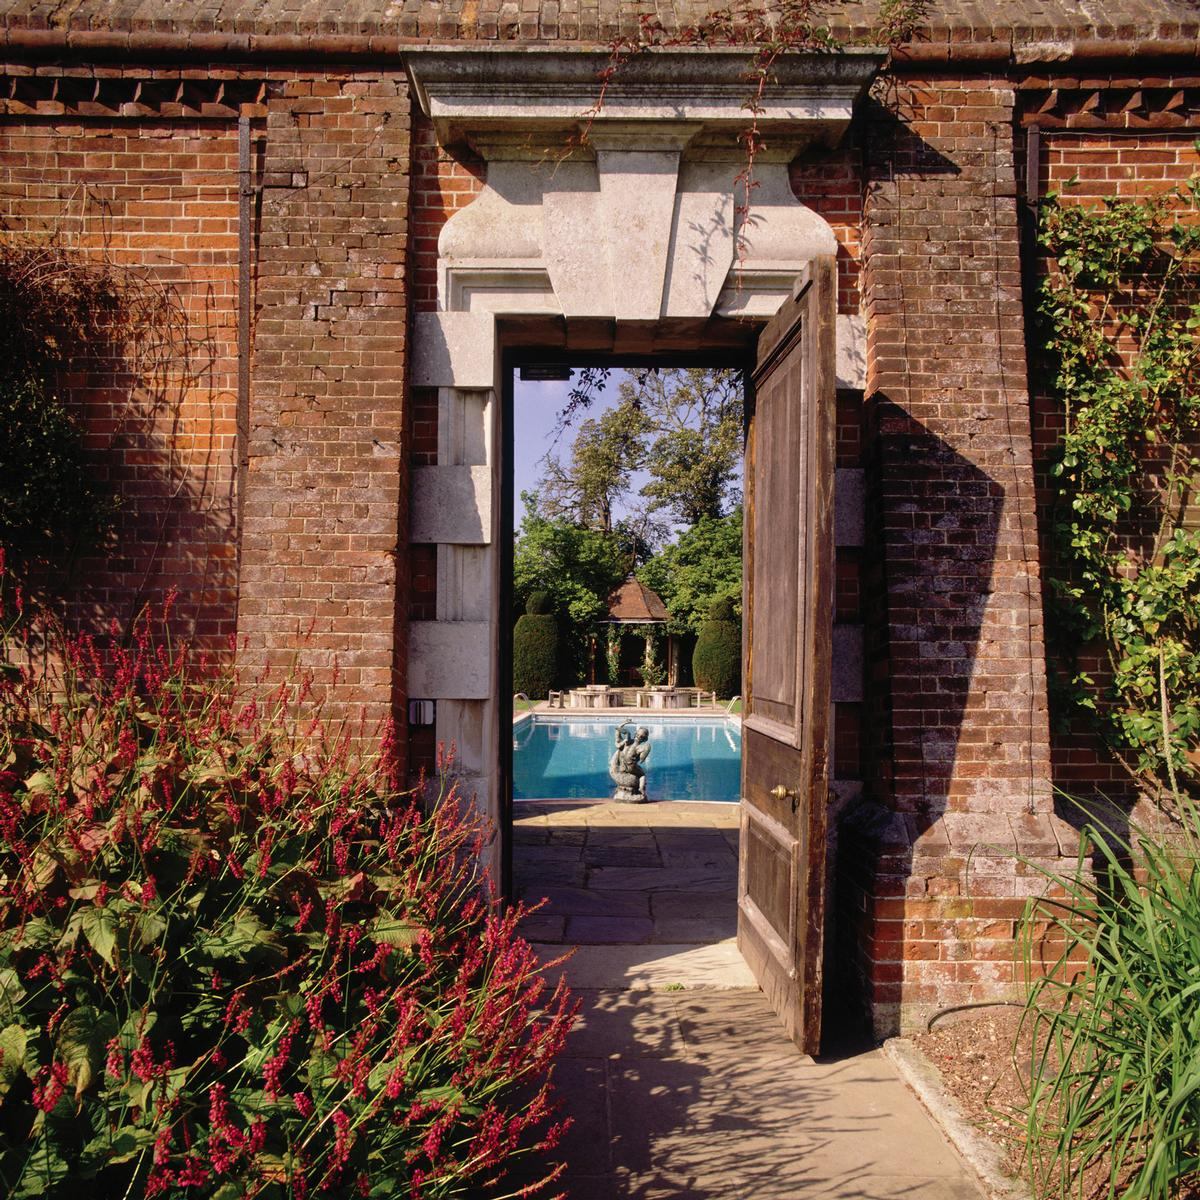 The entrance to the spa will be adjacent to the walled garden